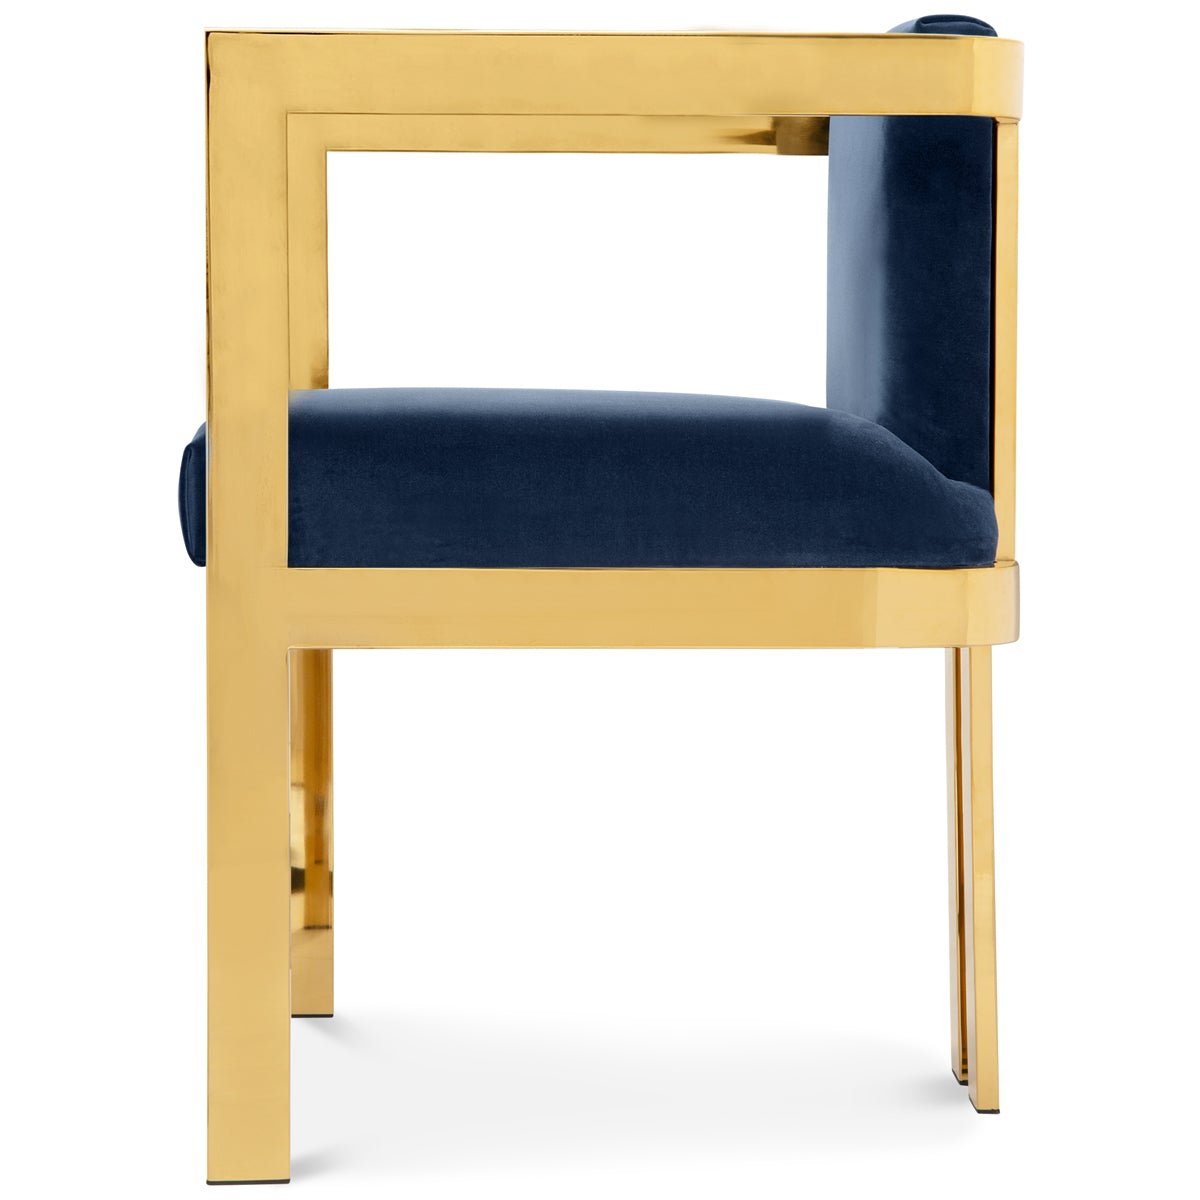 Kingpin Dining Chair in Velvet - ModShop1.com